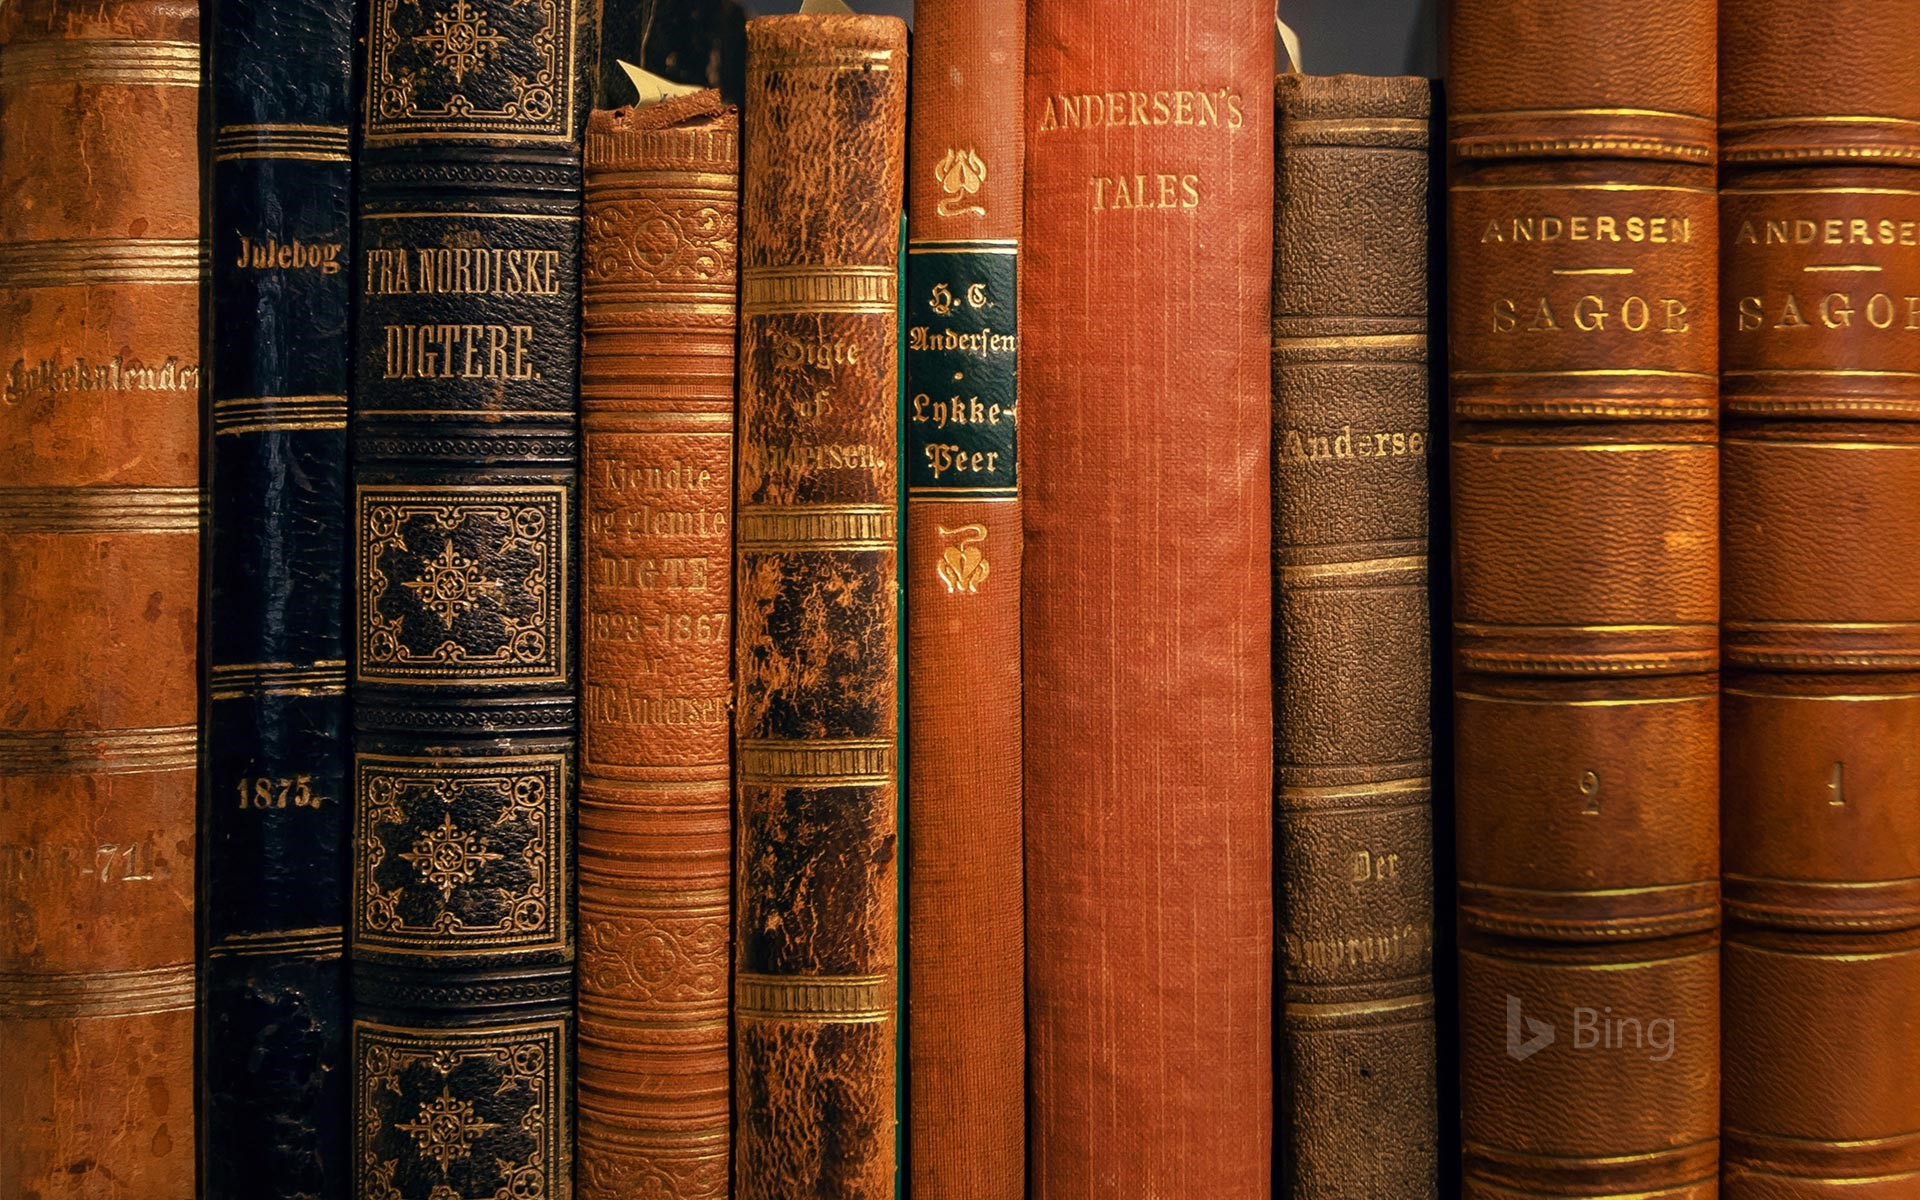 Books by Hans Christian Andersen